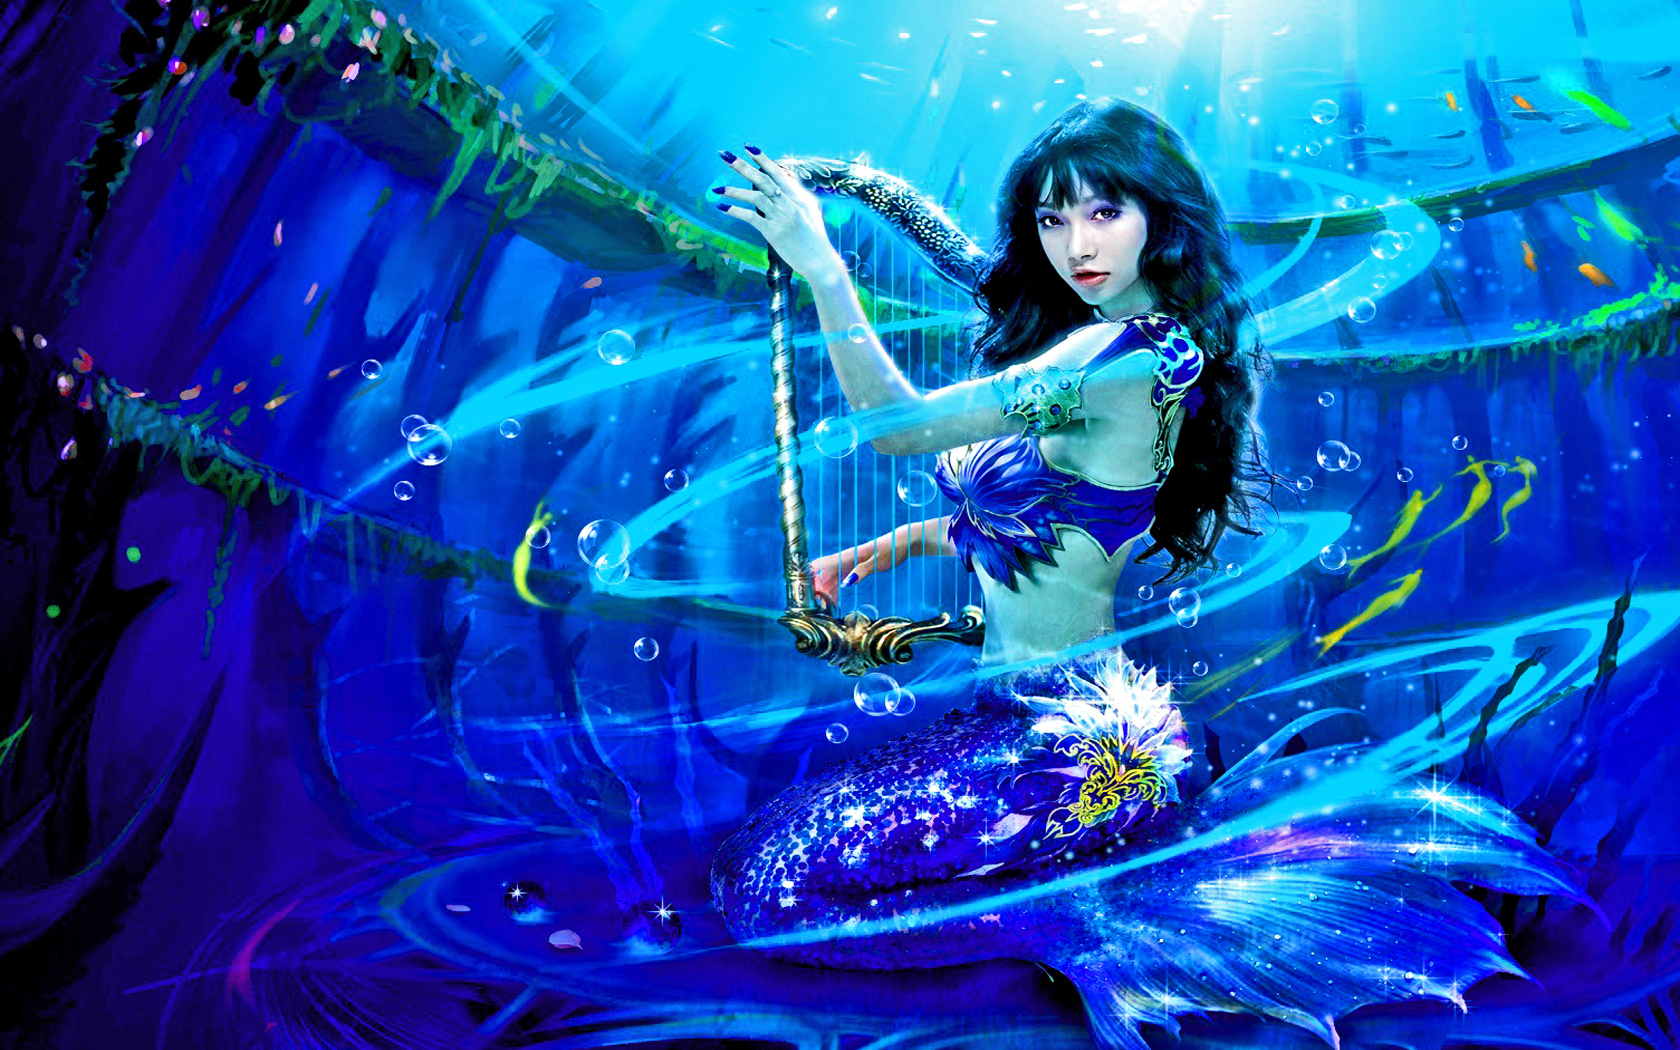 The Mermaid's Harp Wallpapers and Backgrounds Image